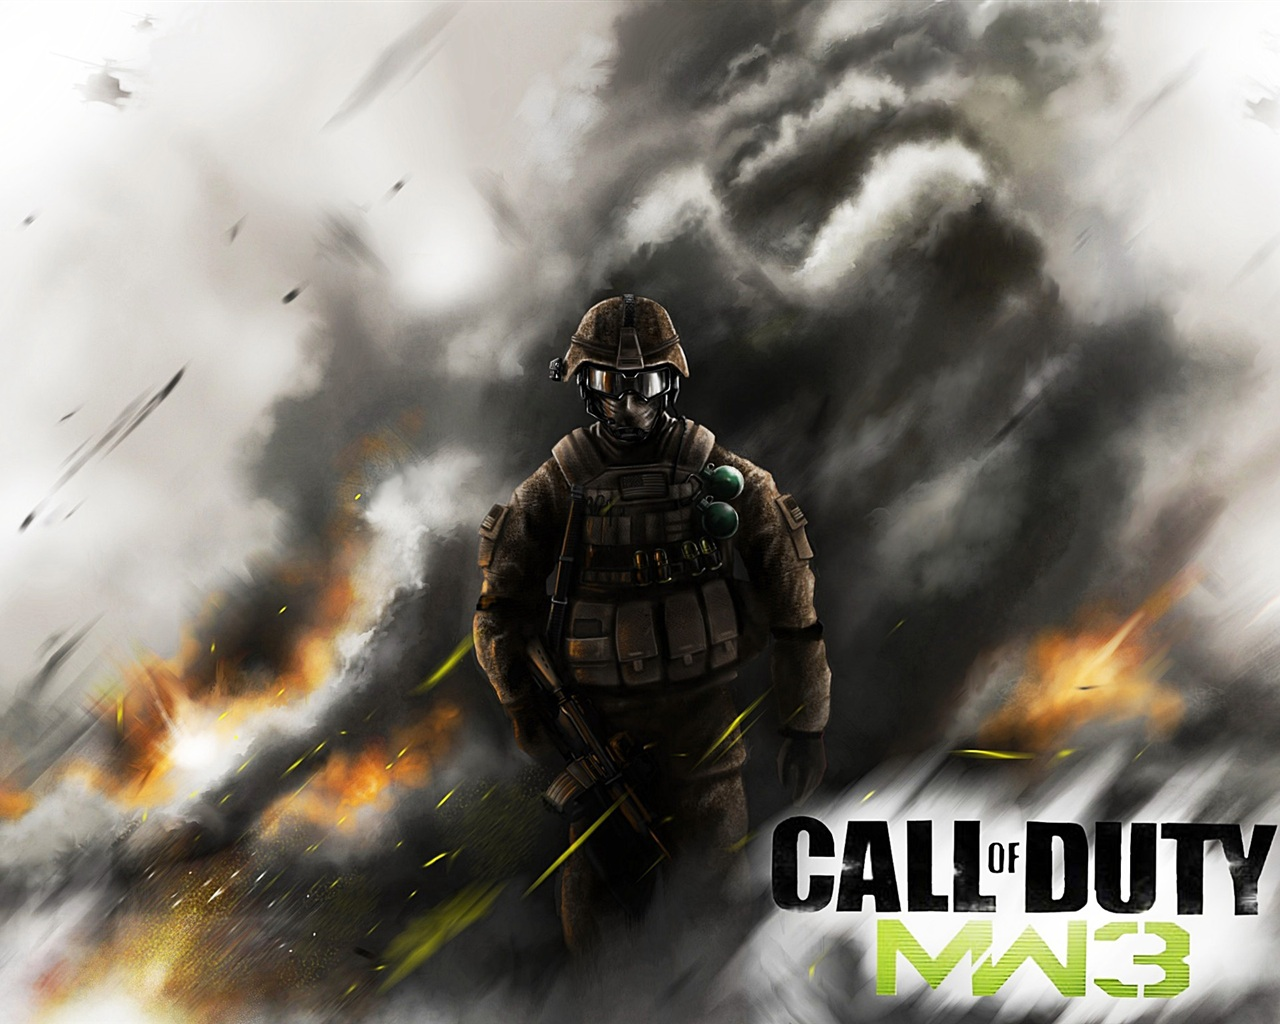 PC Call of Duty: Modern Warfare 3 Fonds d'écran | 1280x1024 Fonds d ...